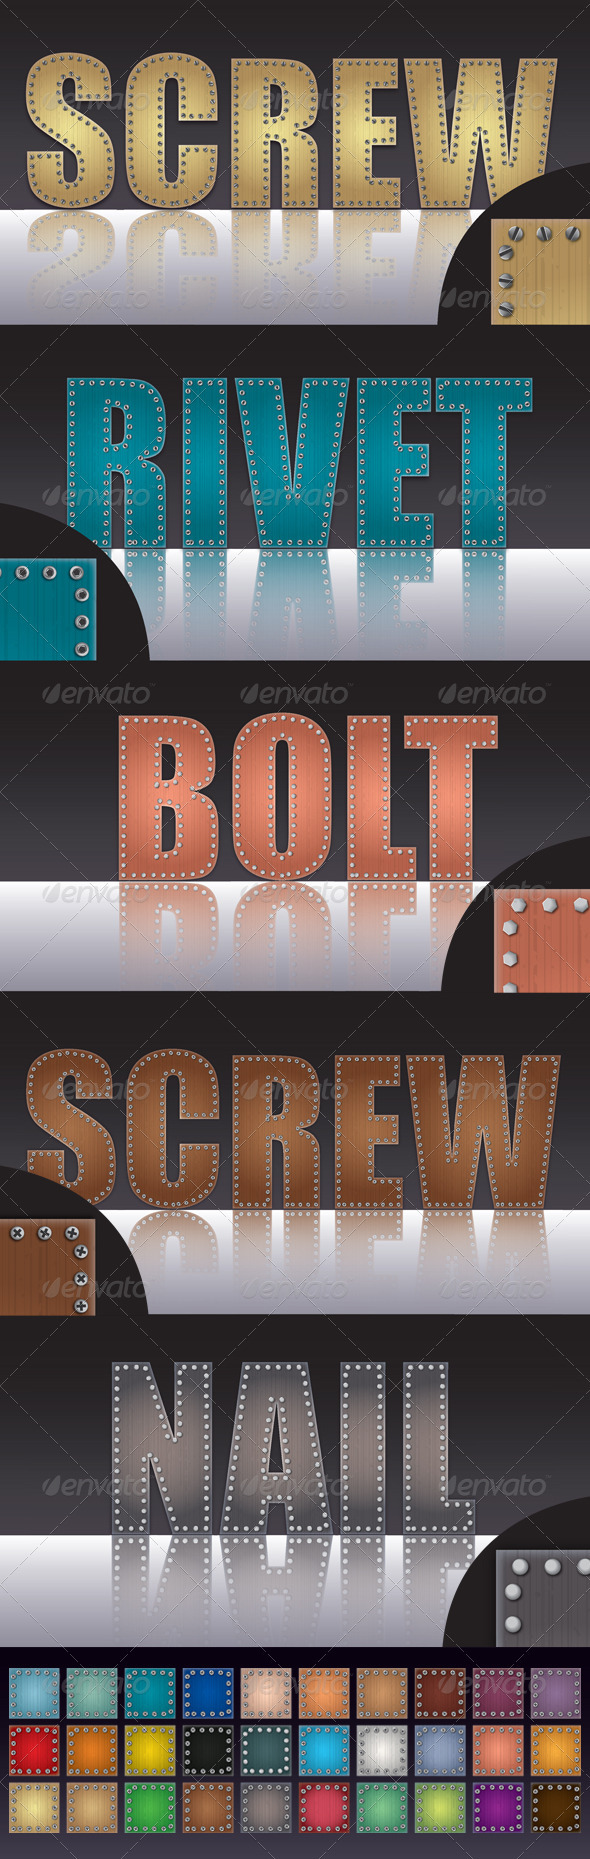 GraphicRiver Screwed Bolted Nailed and Riveted Wooden Graphic Style 3567820